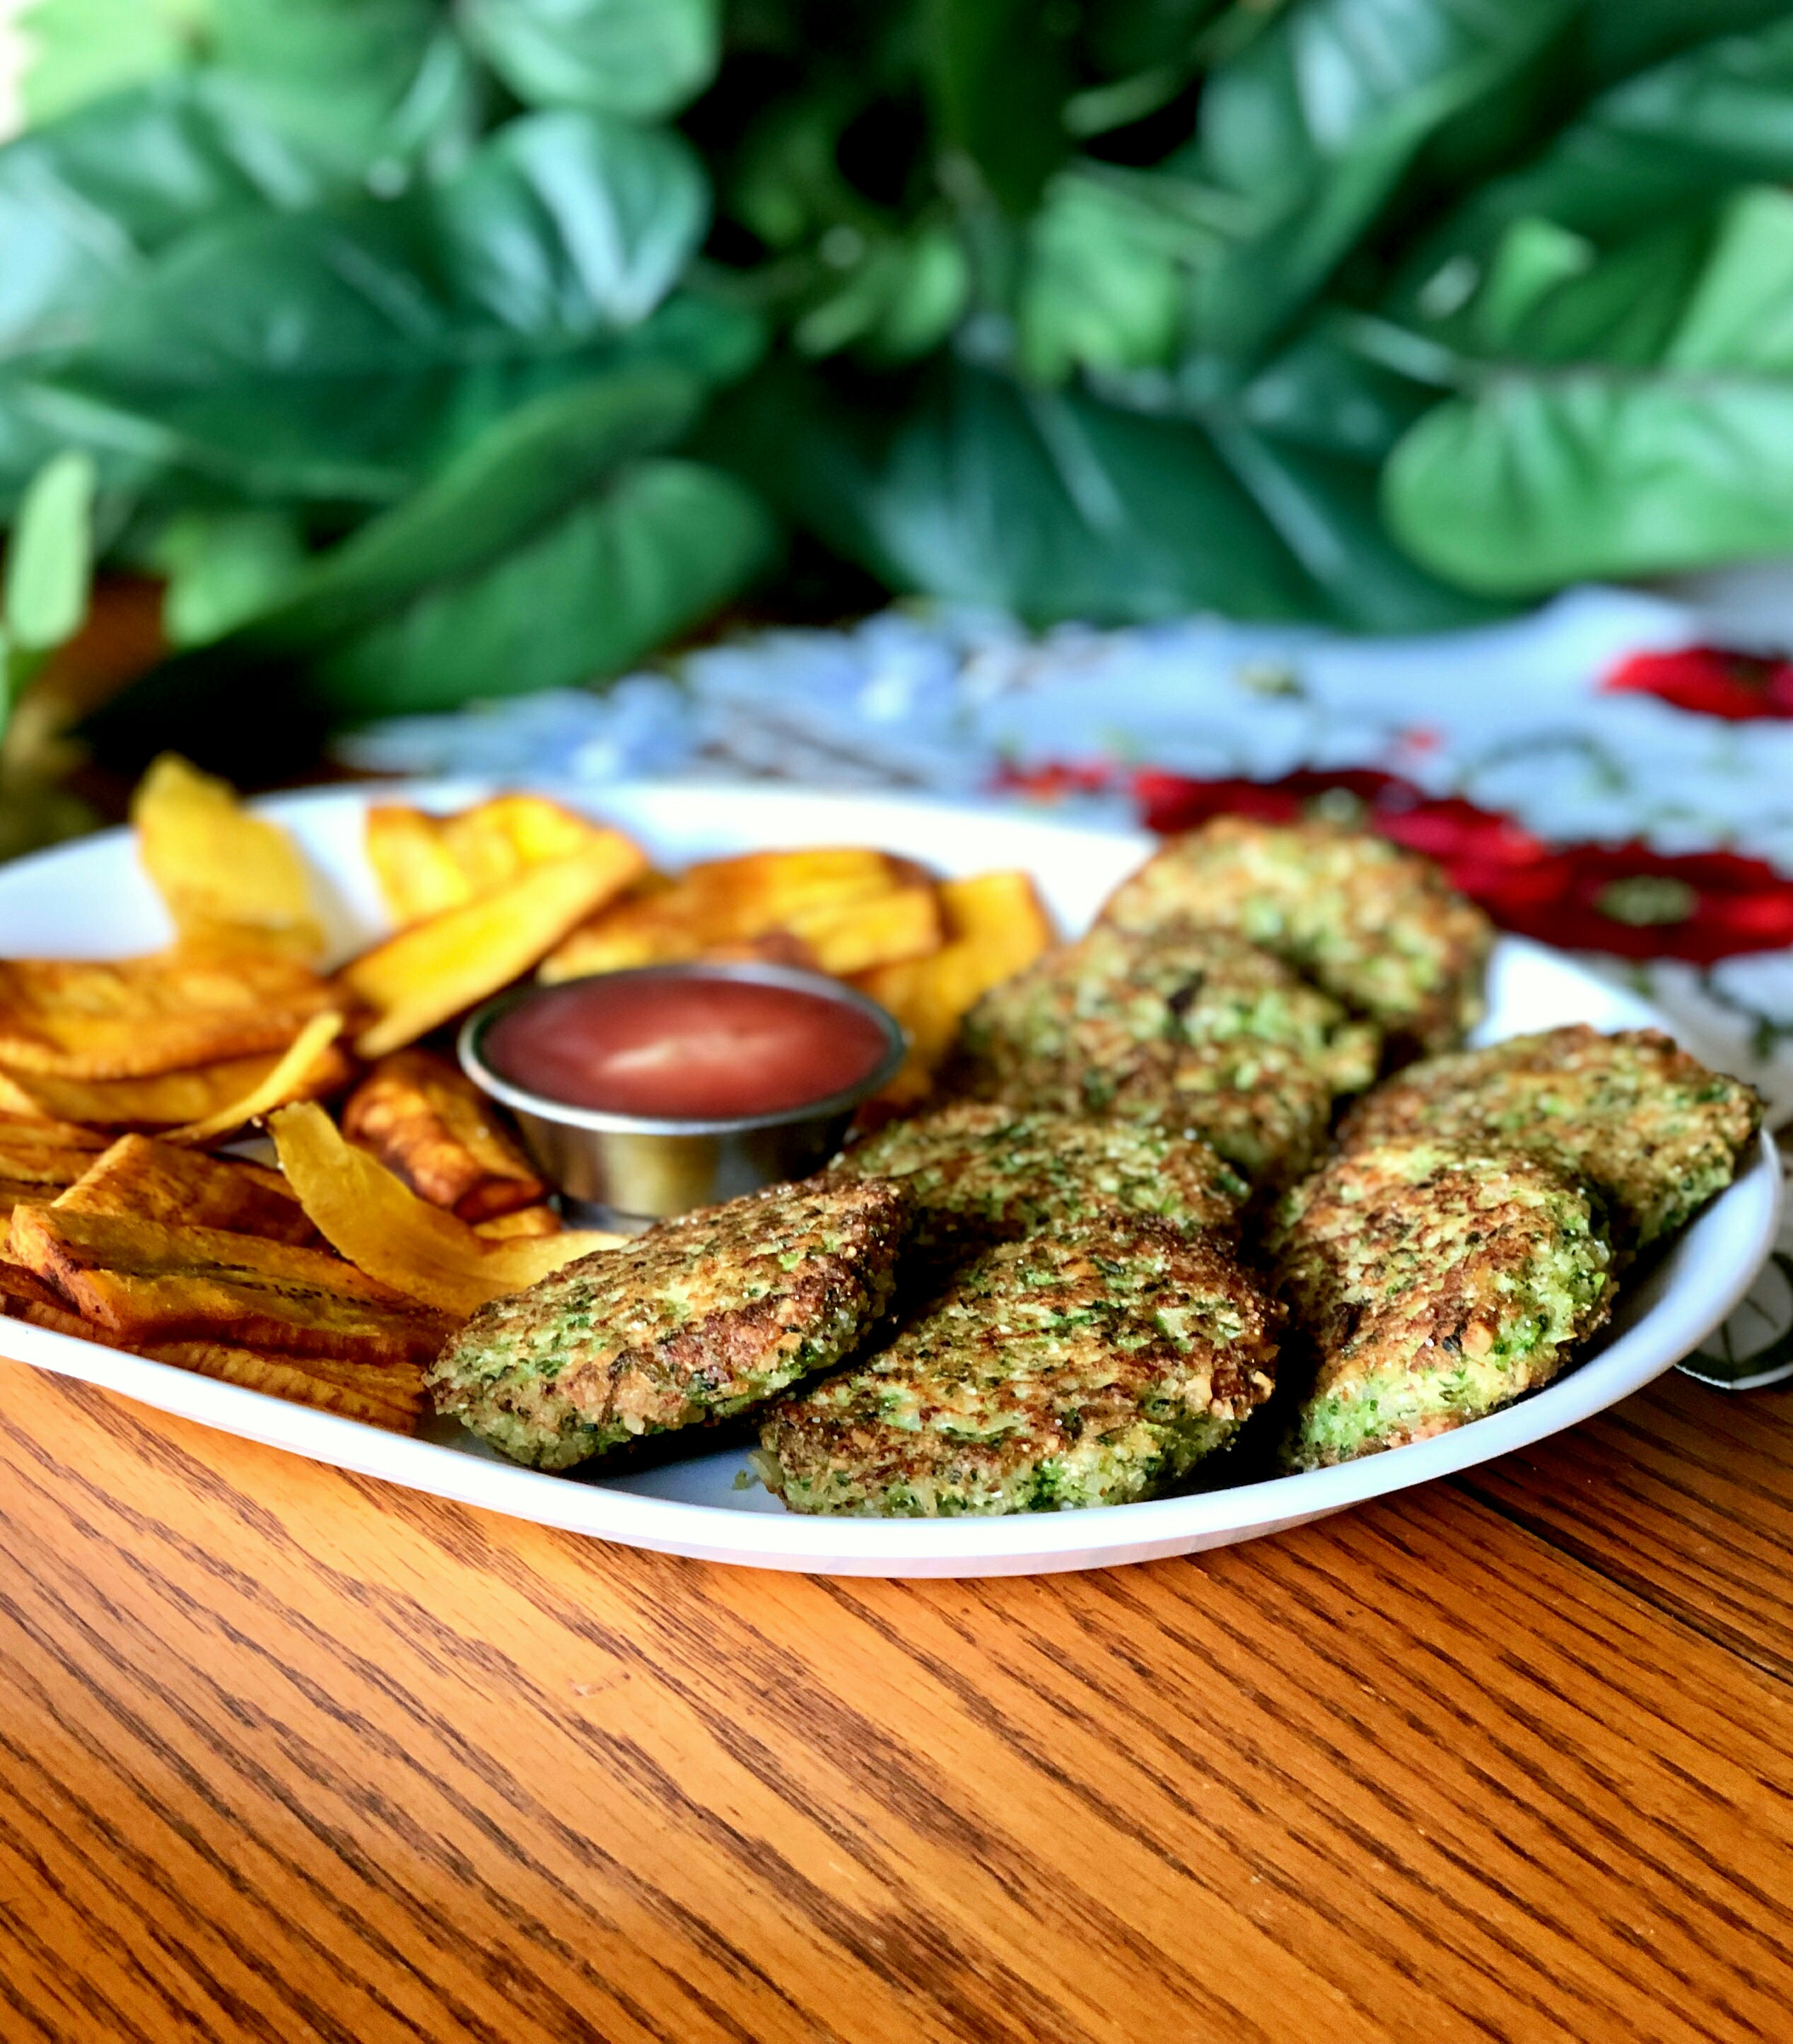 """Cauliflower isn't the only cruciferous veggie in town. These cauliflower cakes hook up with broccoli with delicious results. """"I really liked the nutty flavor the almond flour gave them,"""" says Yoly. """"I think a sprinkle of red pepper flakes would take these up another notch."""""""